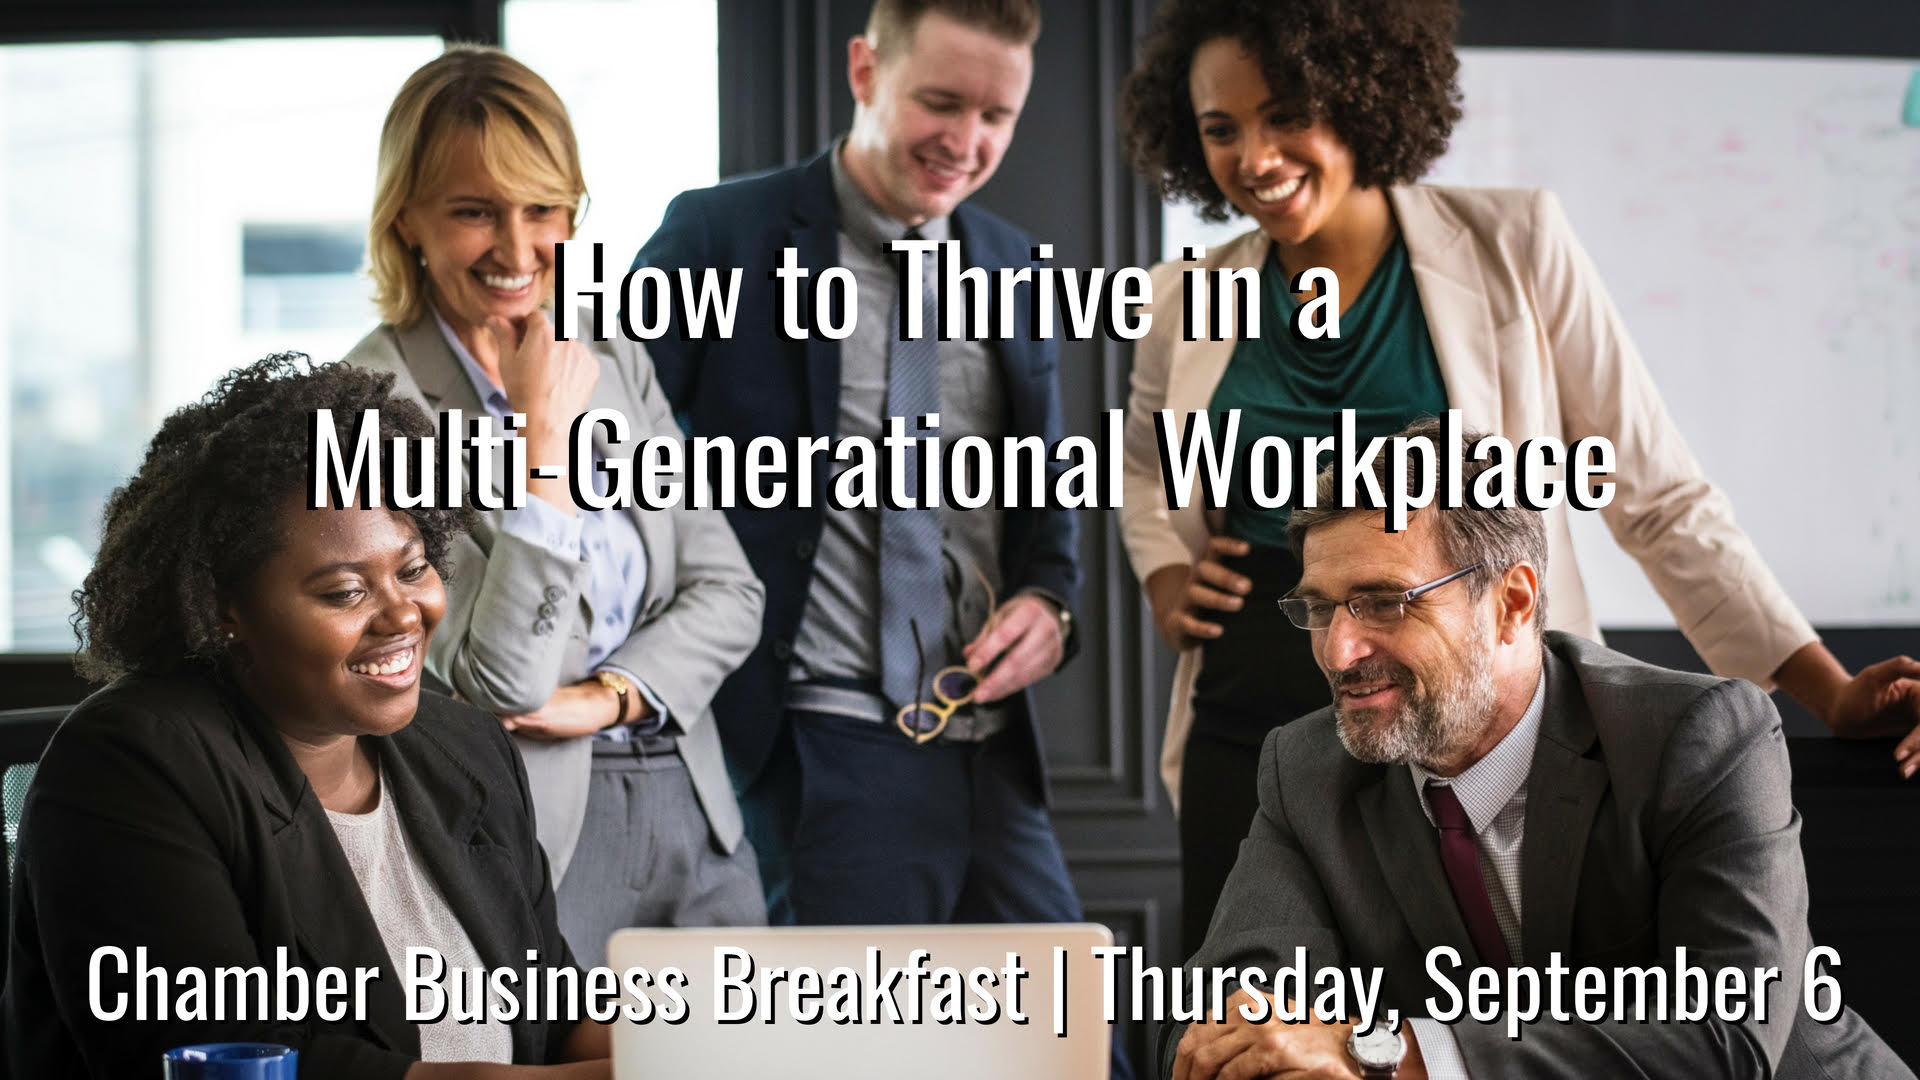 How to Thrive in a Multi-Generational Workplace